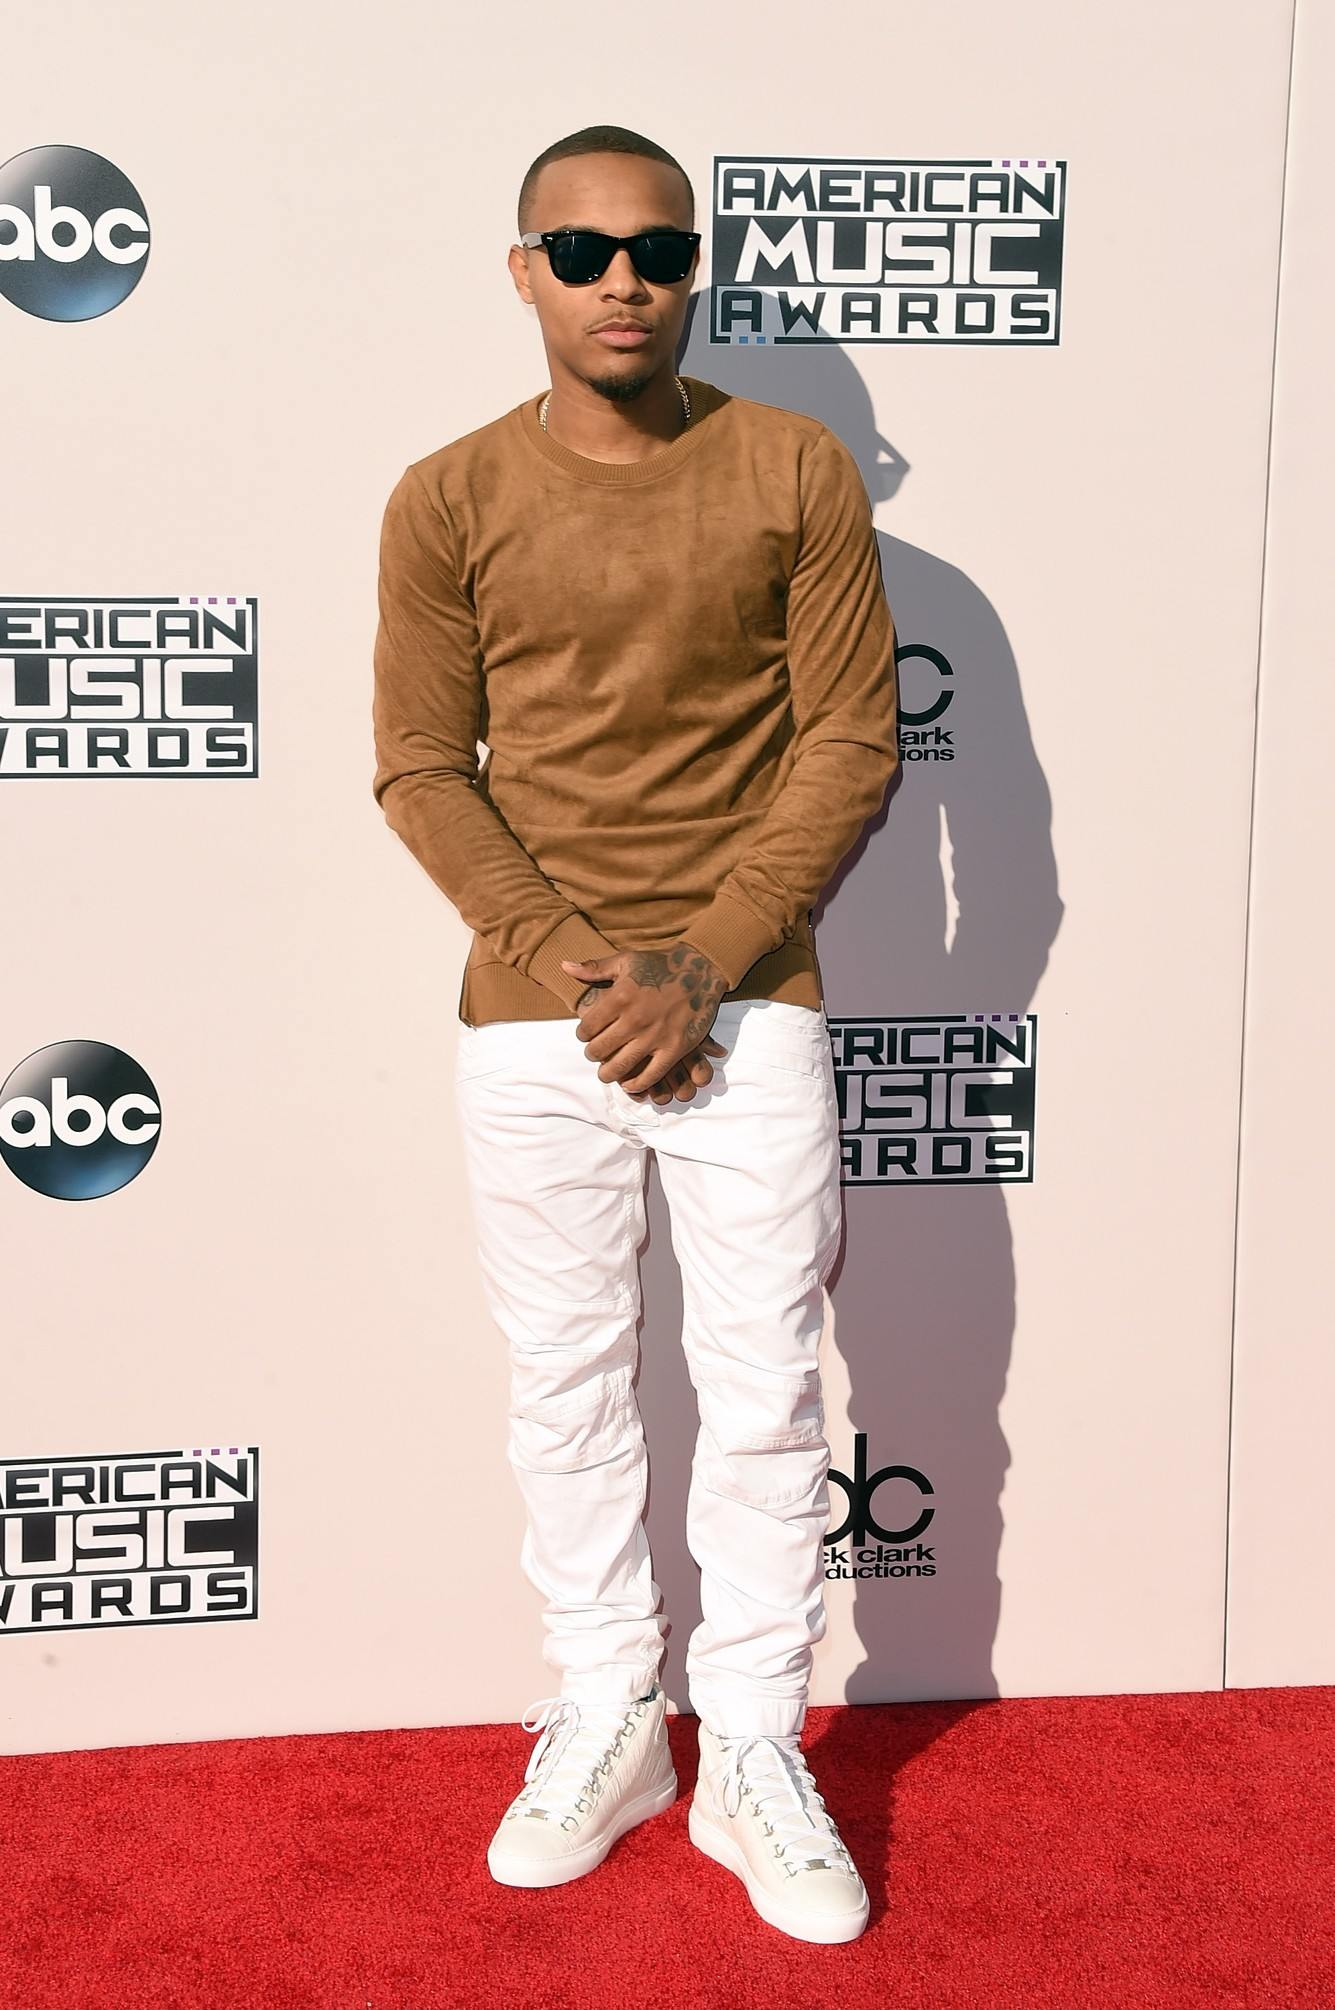 Bow Wow wearing brown top and white pants